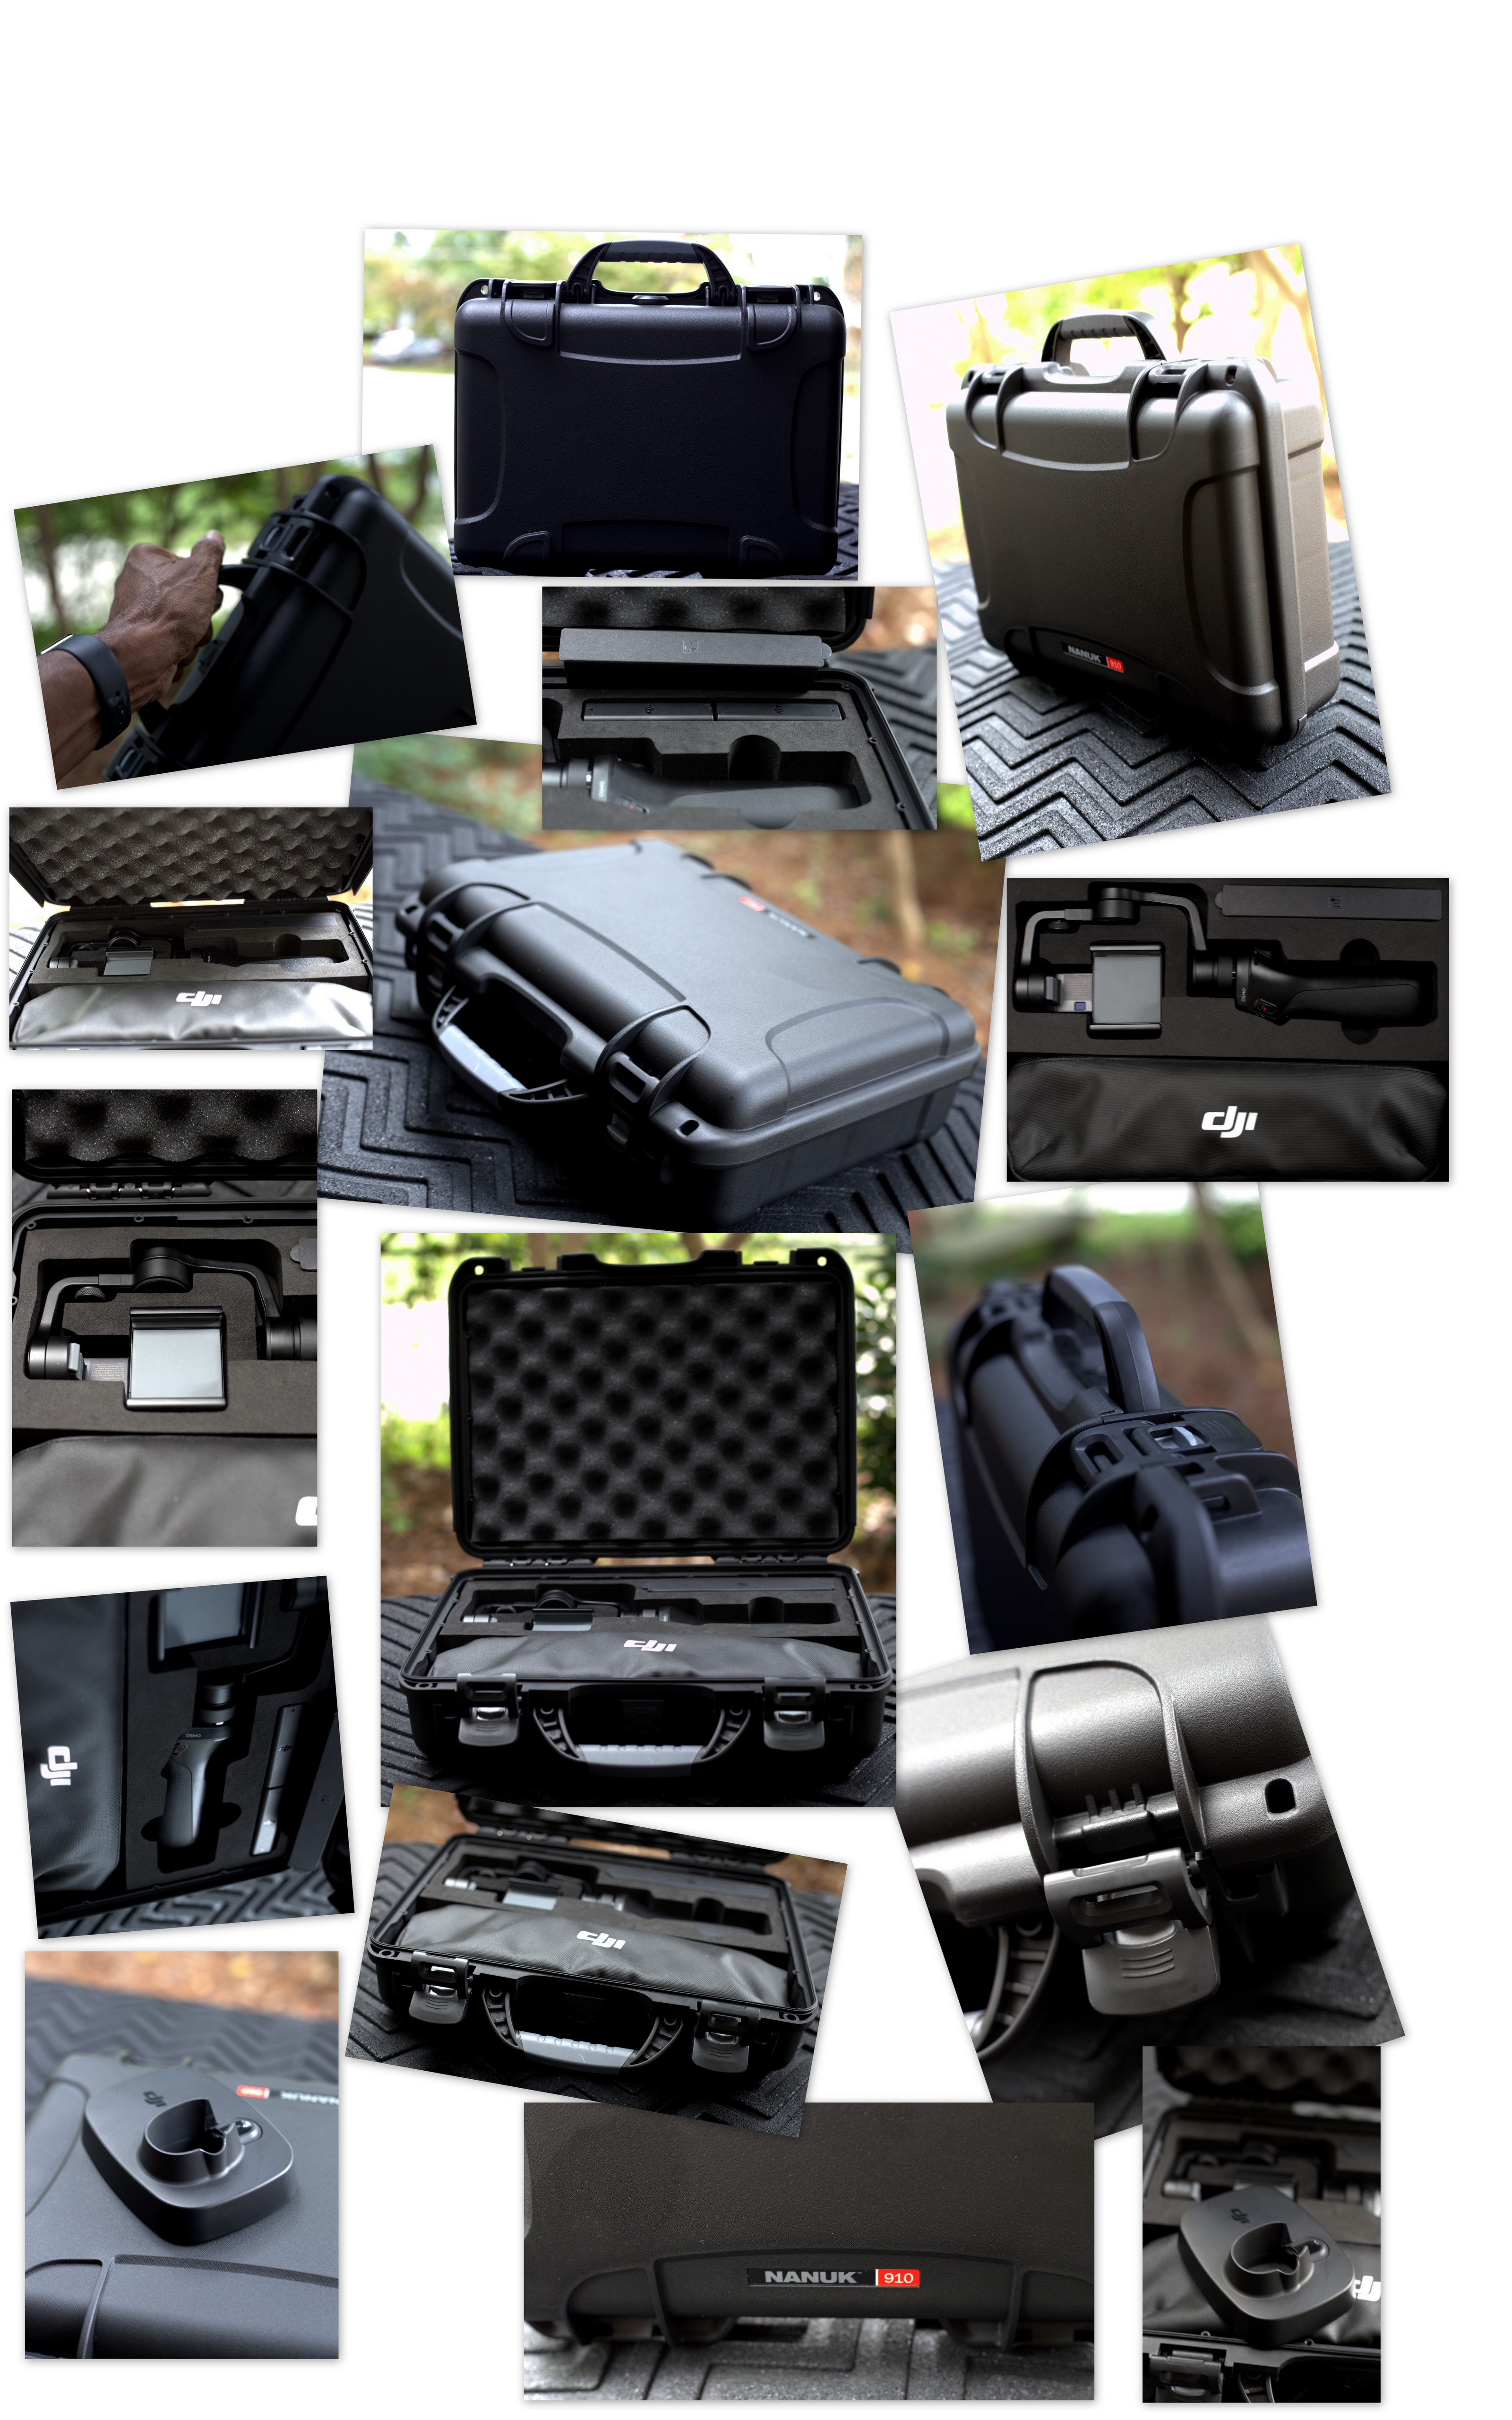 Osmo Mobile Bag Dji Forum Free Base I Wish Could Fit My In The Case With Contents Tripod Extension Rod Battery Charger Power Cord And Arca Swiss Plate For